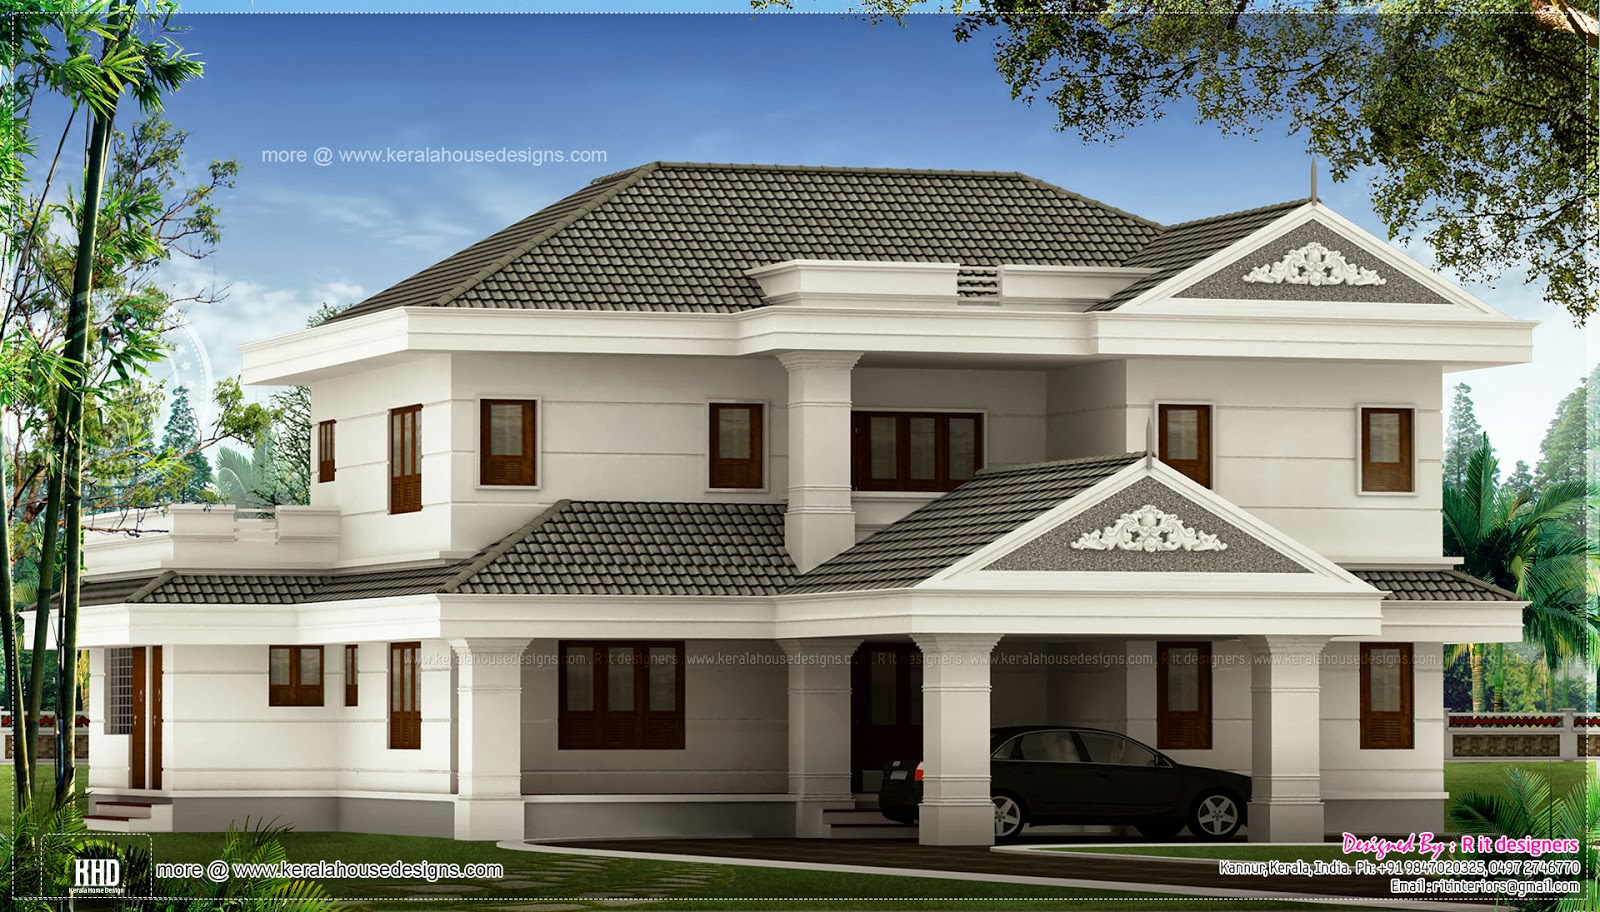 Kerala 5 lakhs house joy studio design gallery best design Low cost home design in india